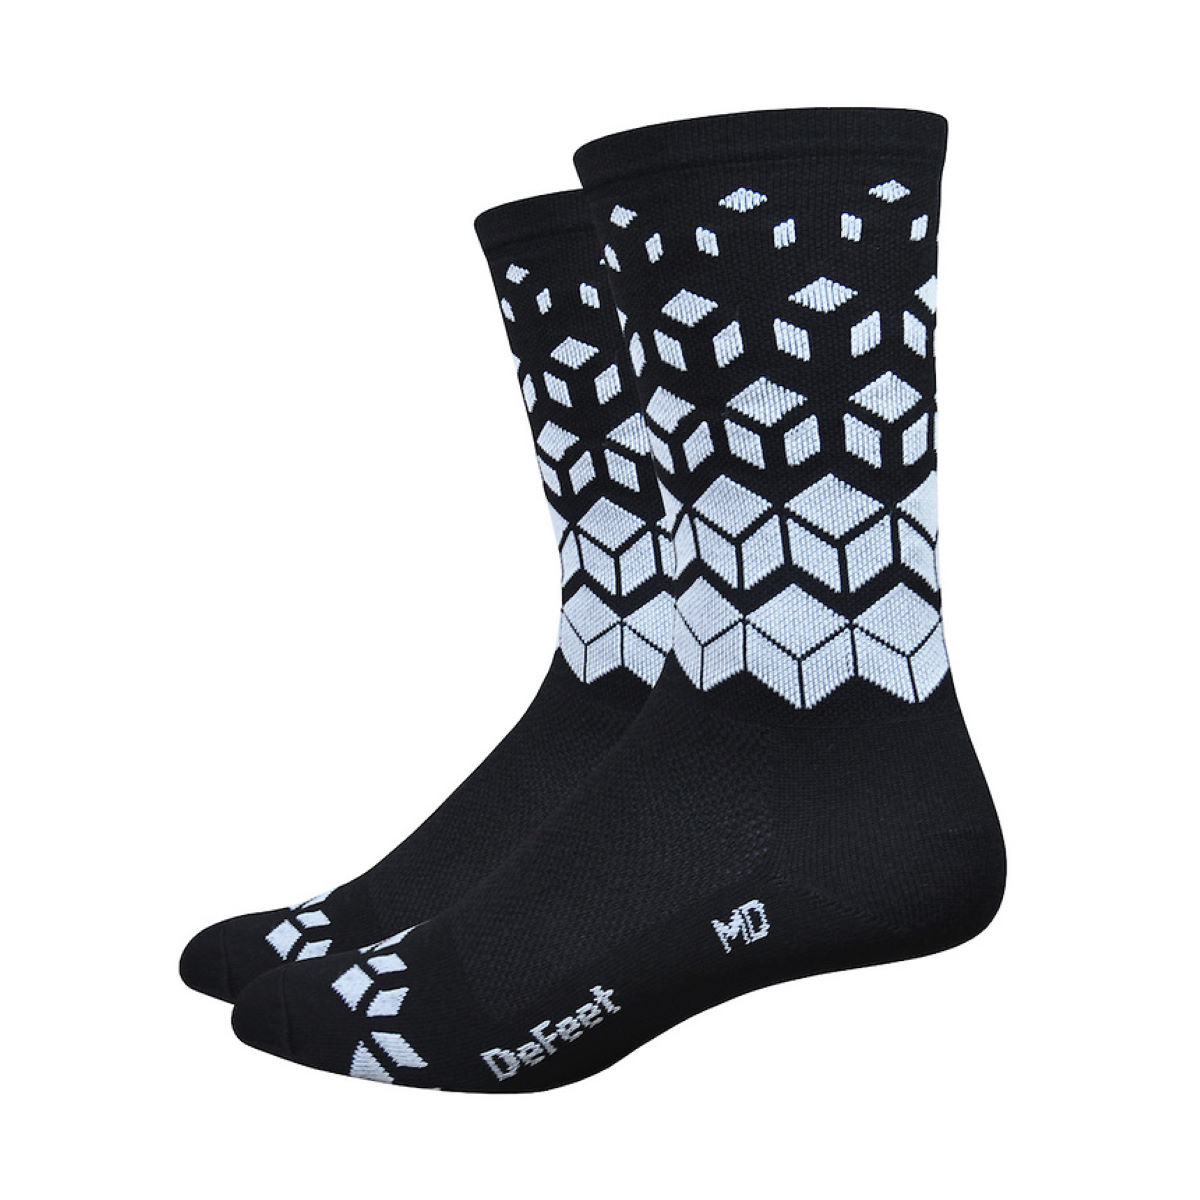 Chaussettes DeFeet Aireator On The Rocks (15 cm environ) - S